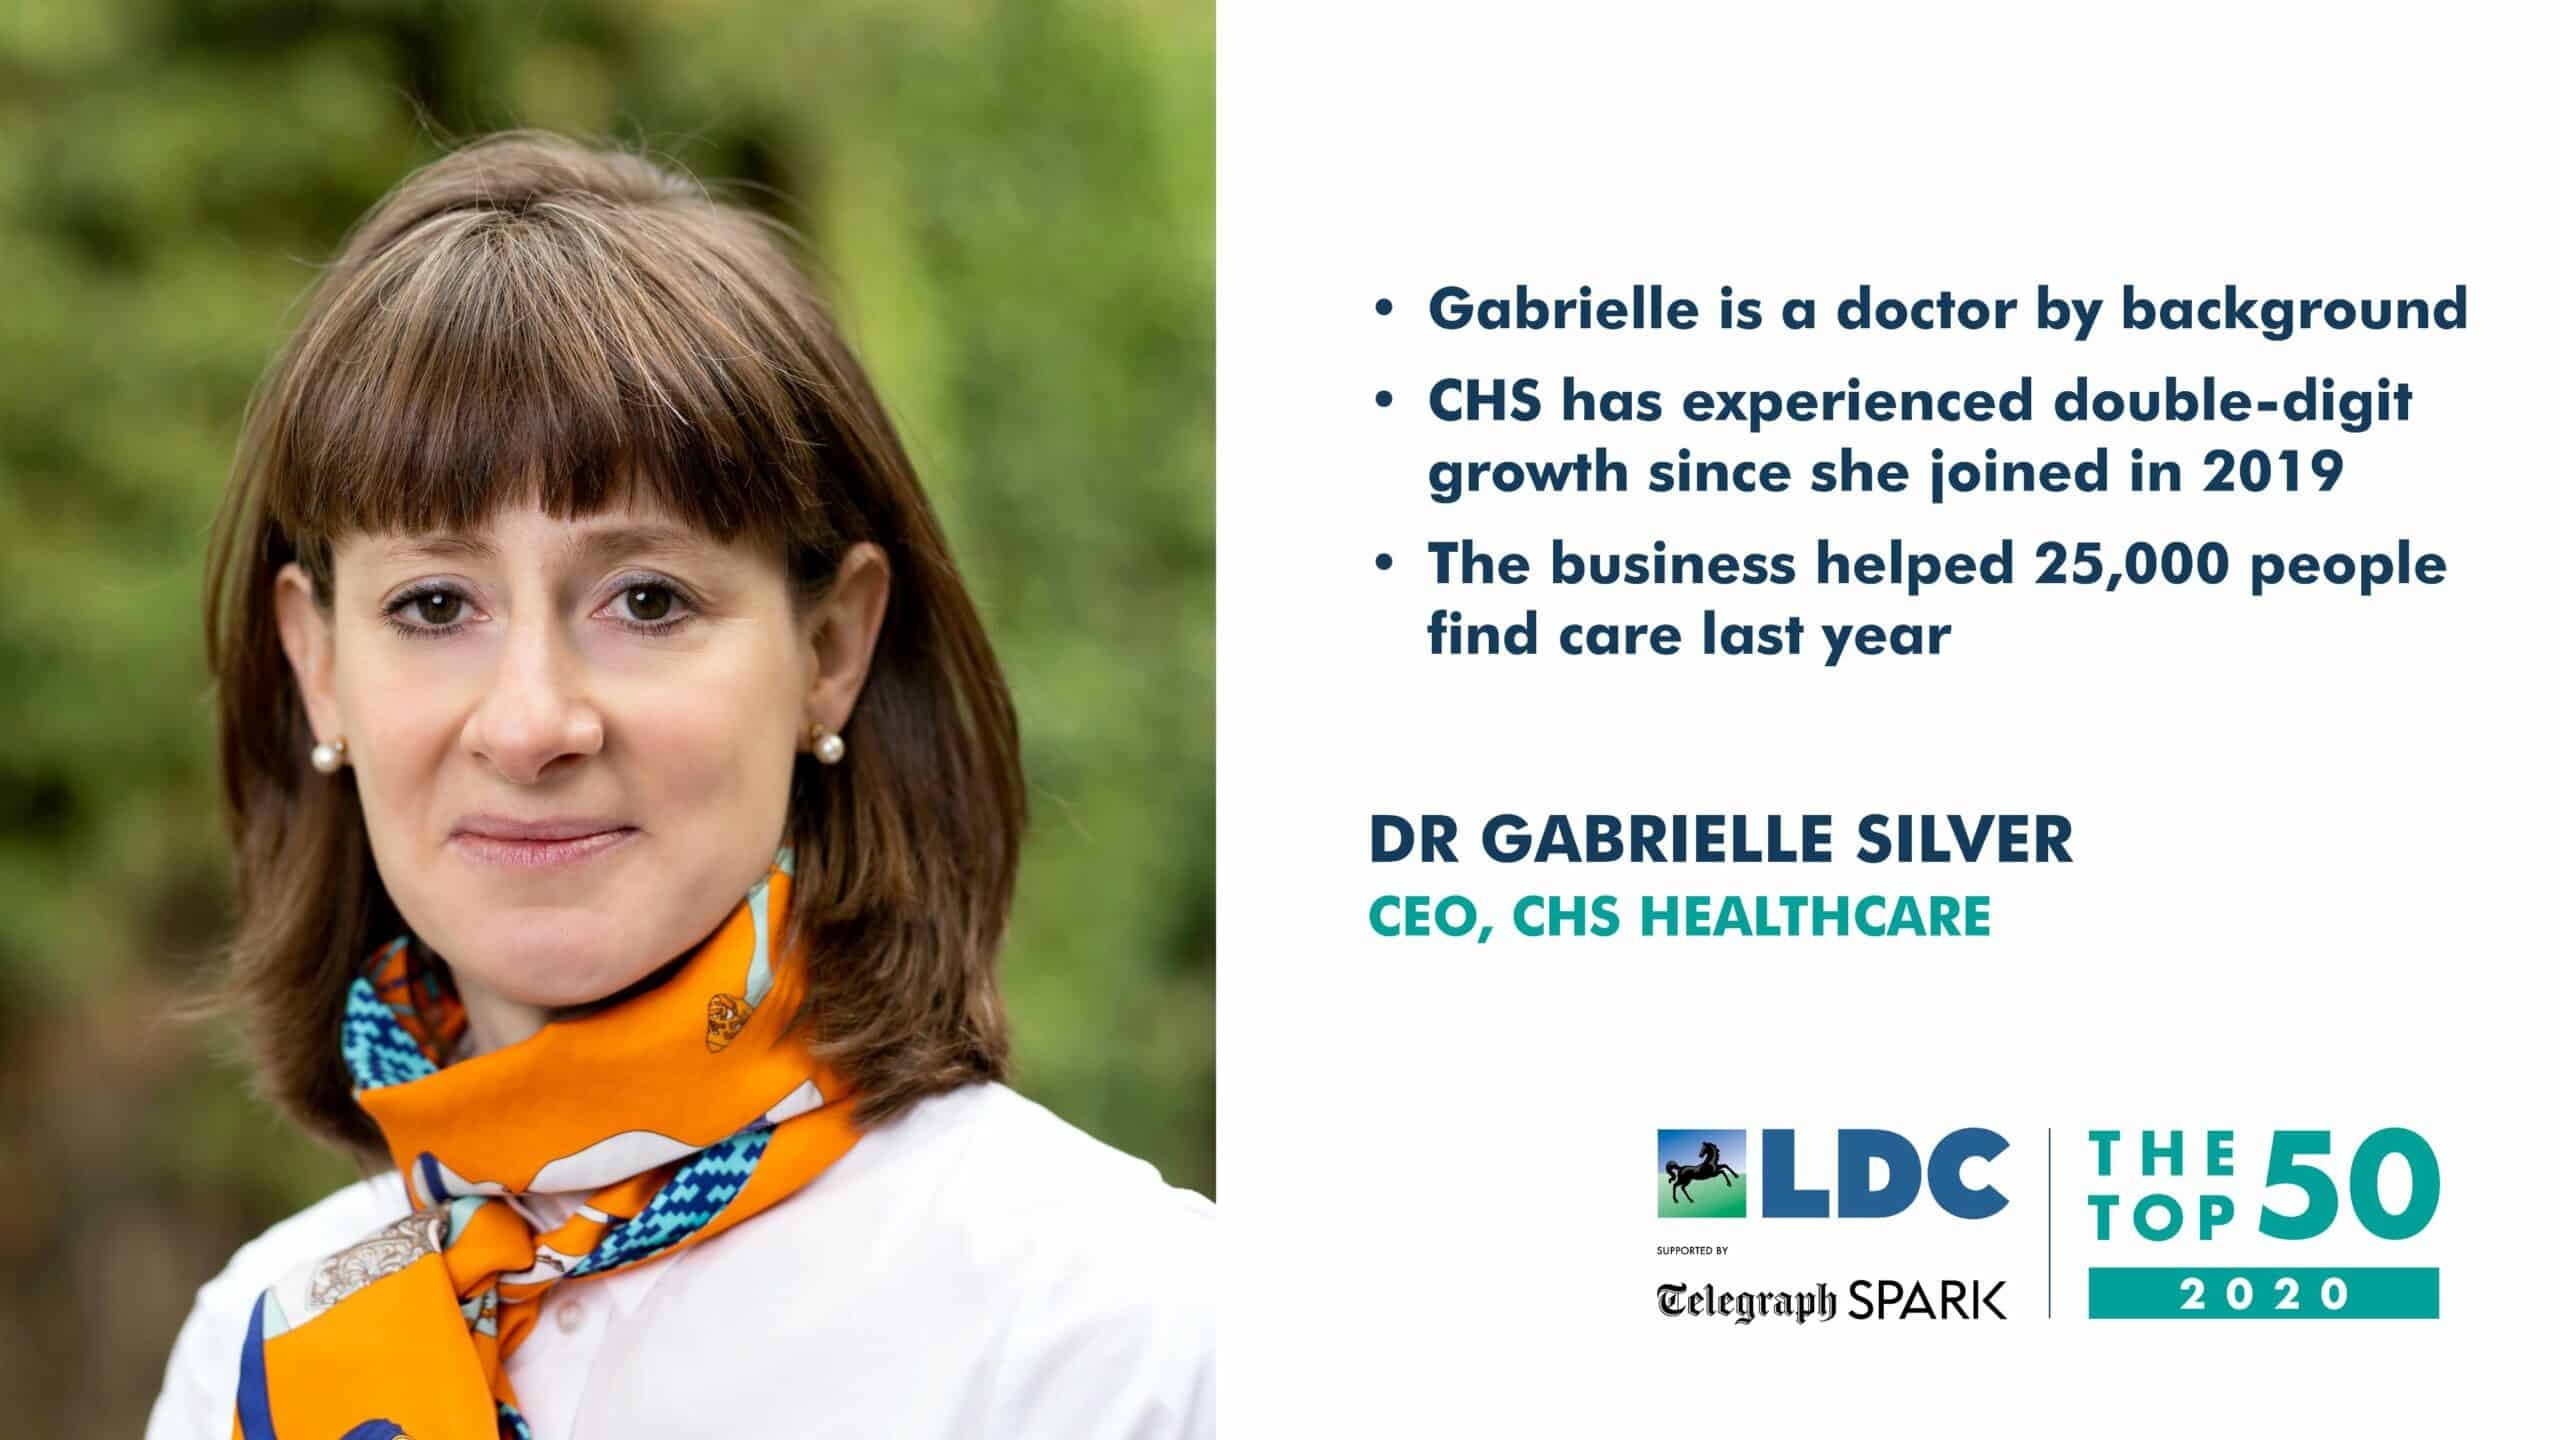 CEO Dr Gabrielle Silver named in LDC's Top 50 Most Ambitious Business Leaders for 2020